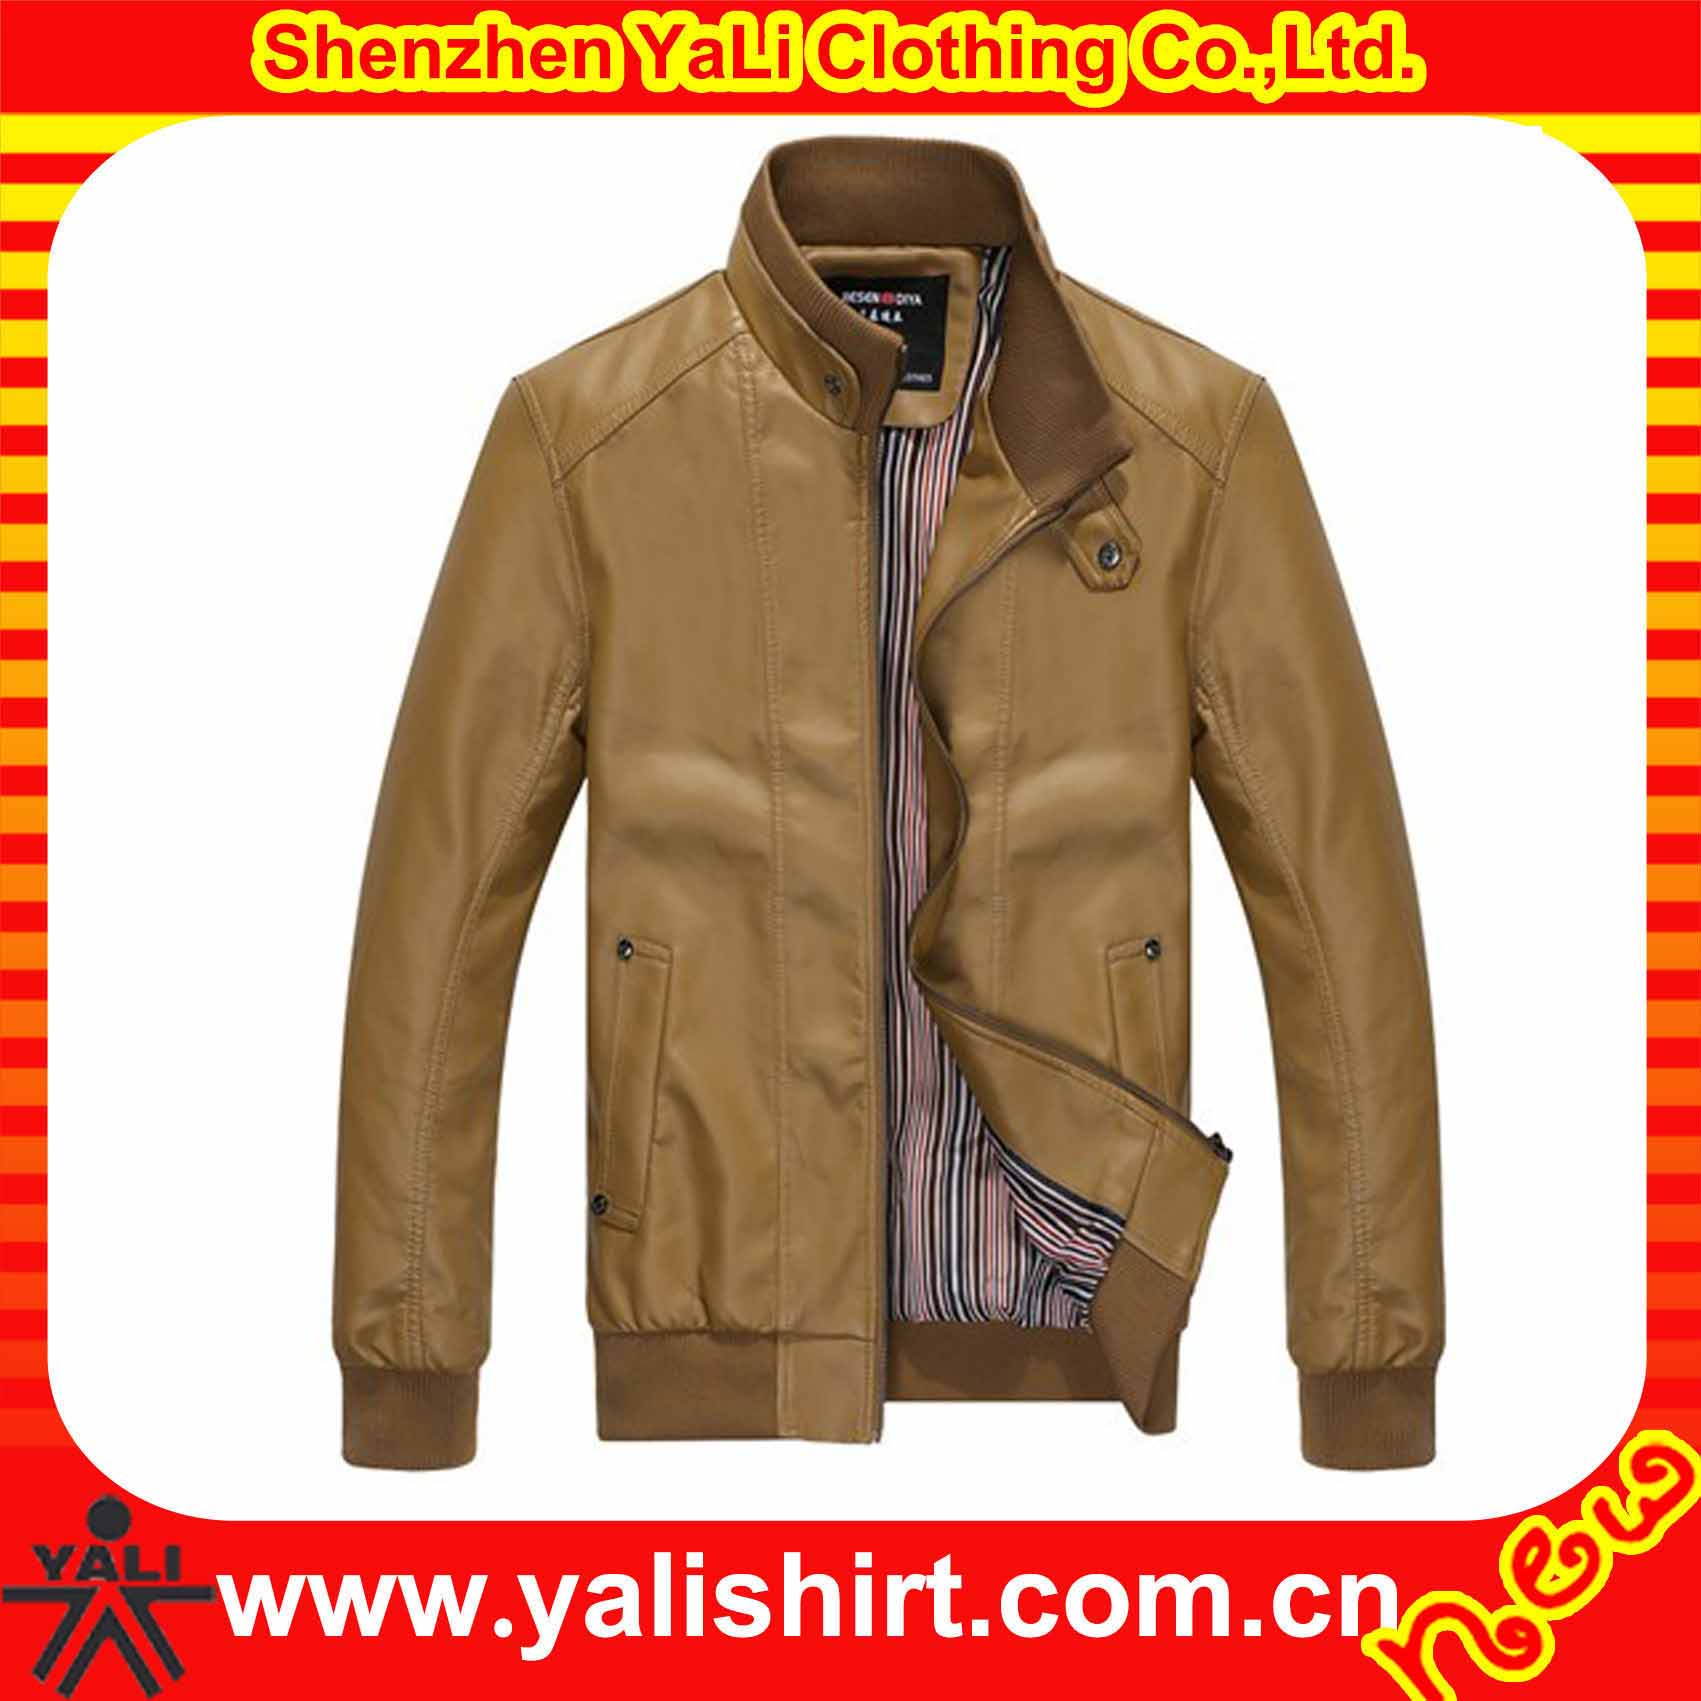 Fashion top quality windproof warm fitness PU leather jackets wholesale men's apparel